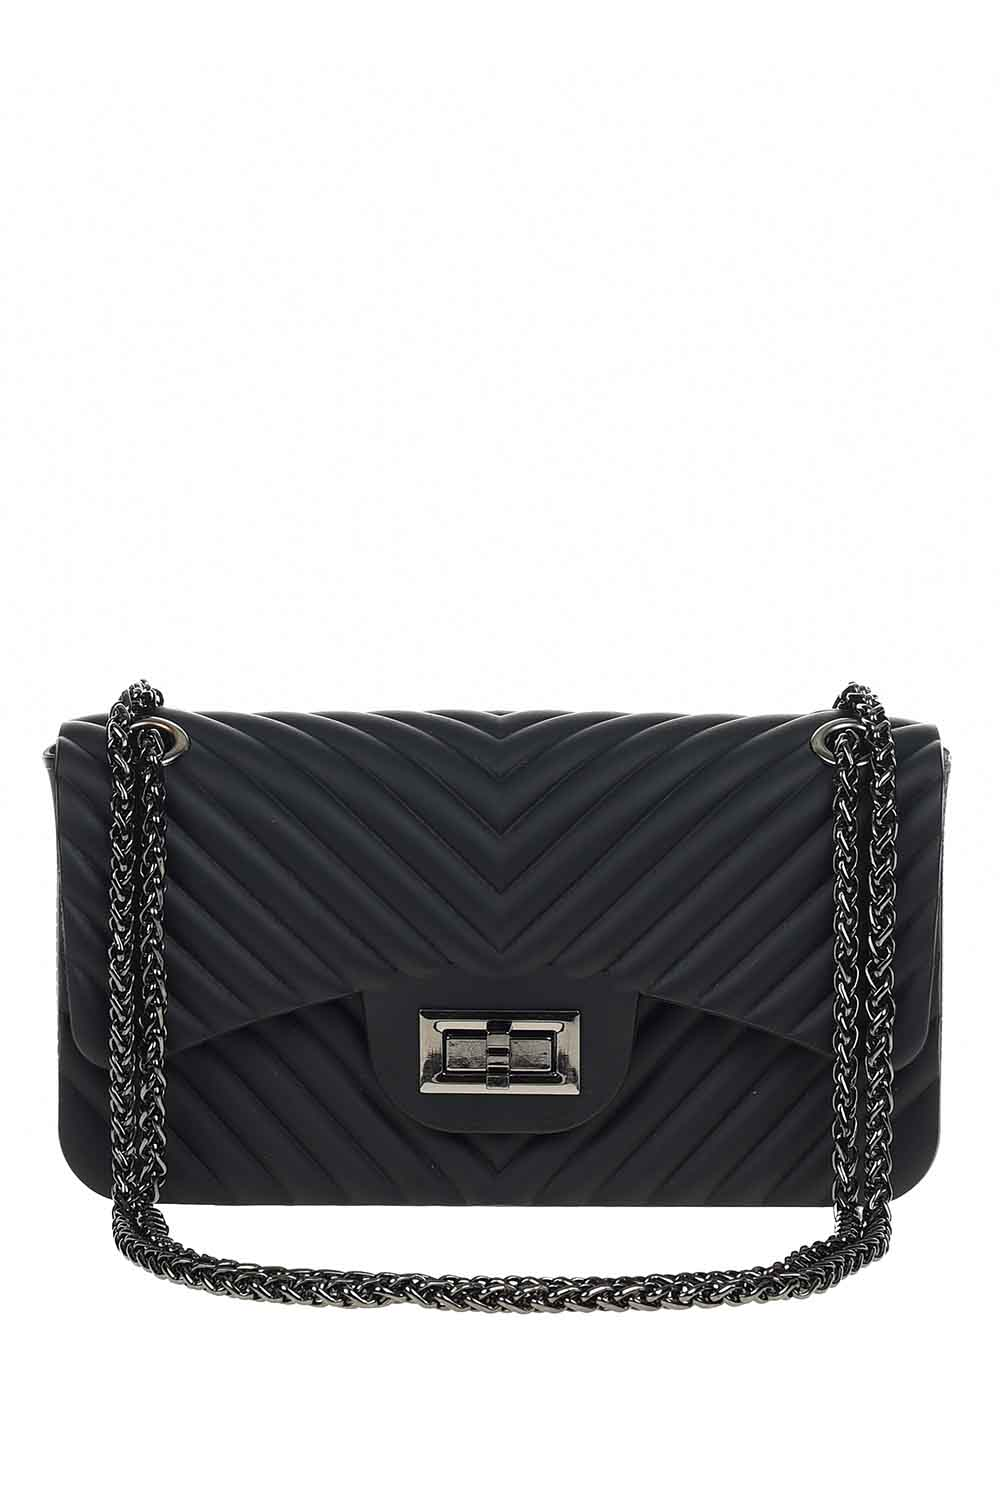 MIZALLE Patterned Hand Bag (Black) (1)